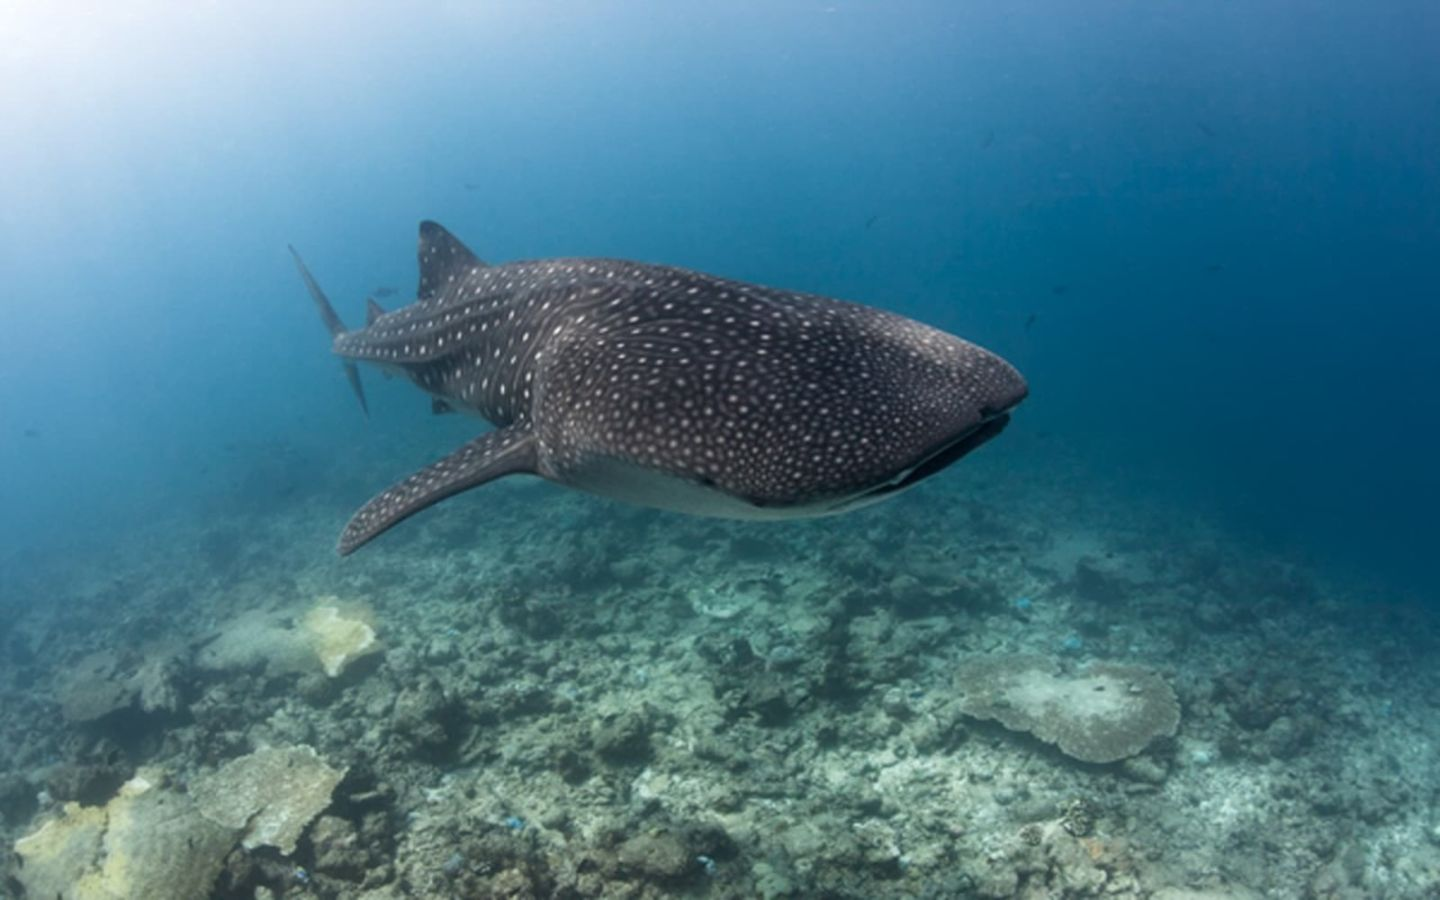 Image of a whale shark swimming in the ocean